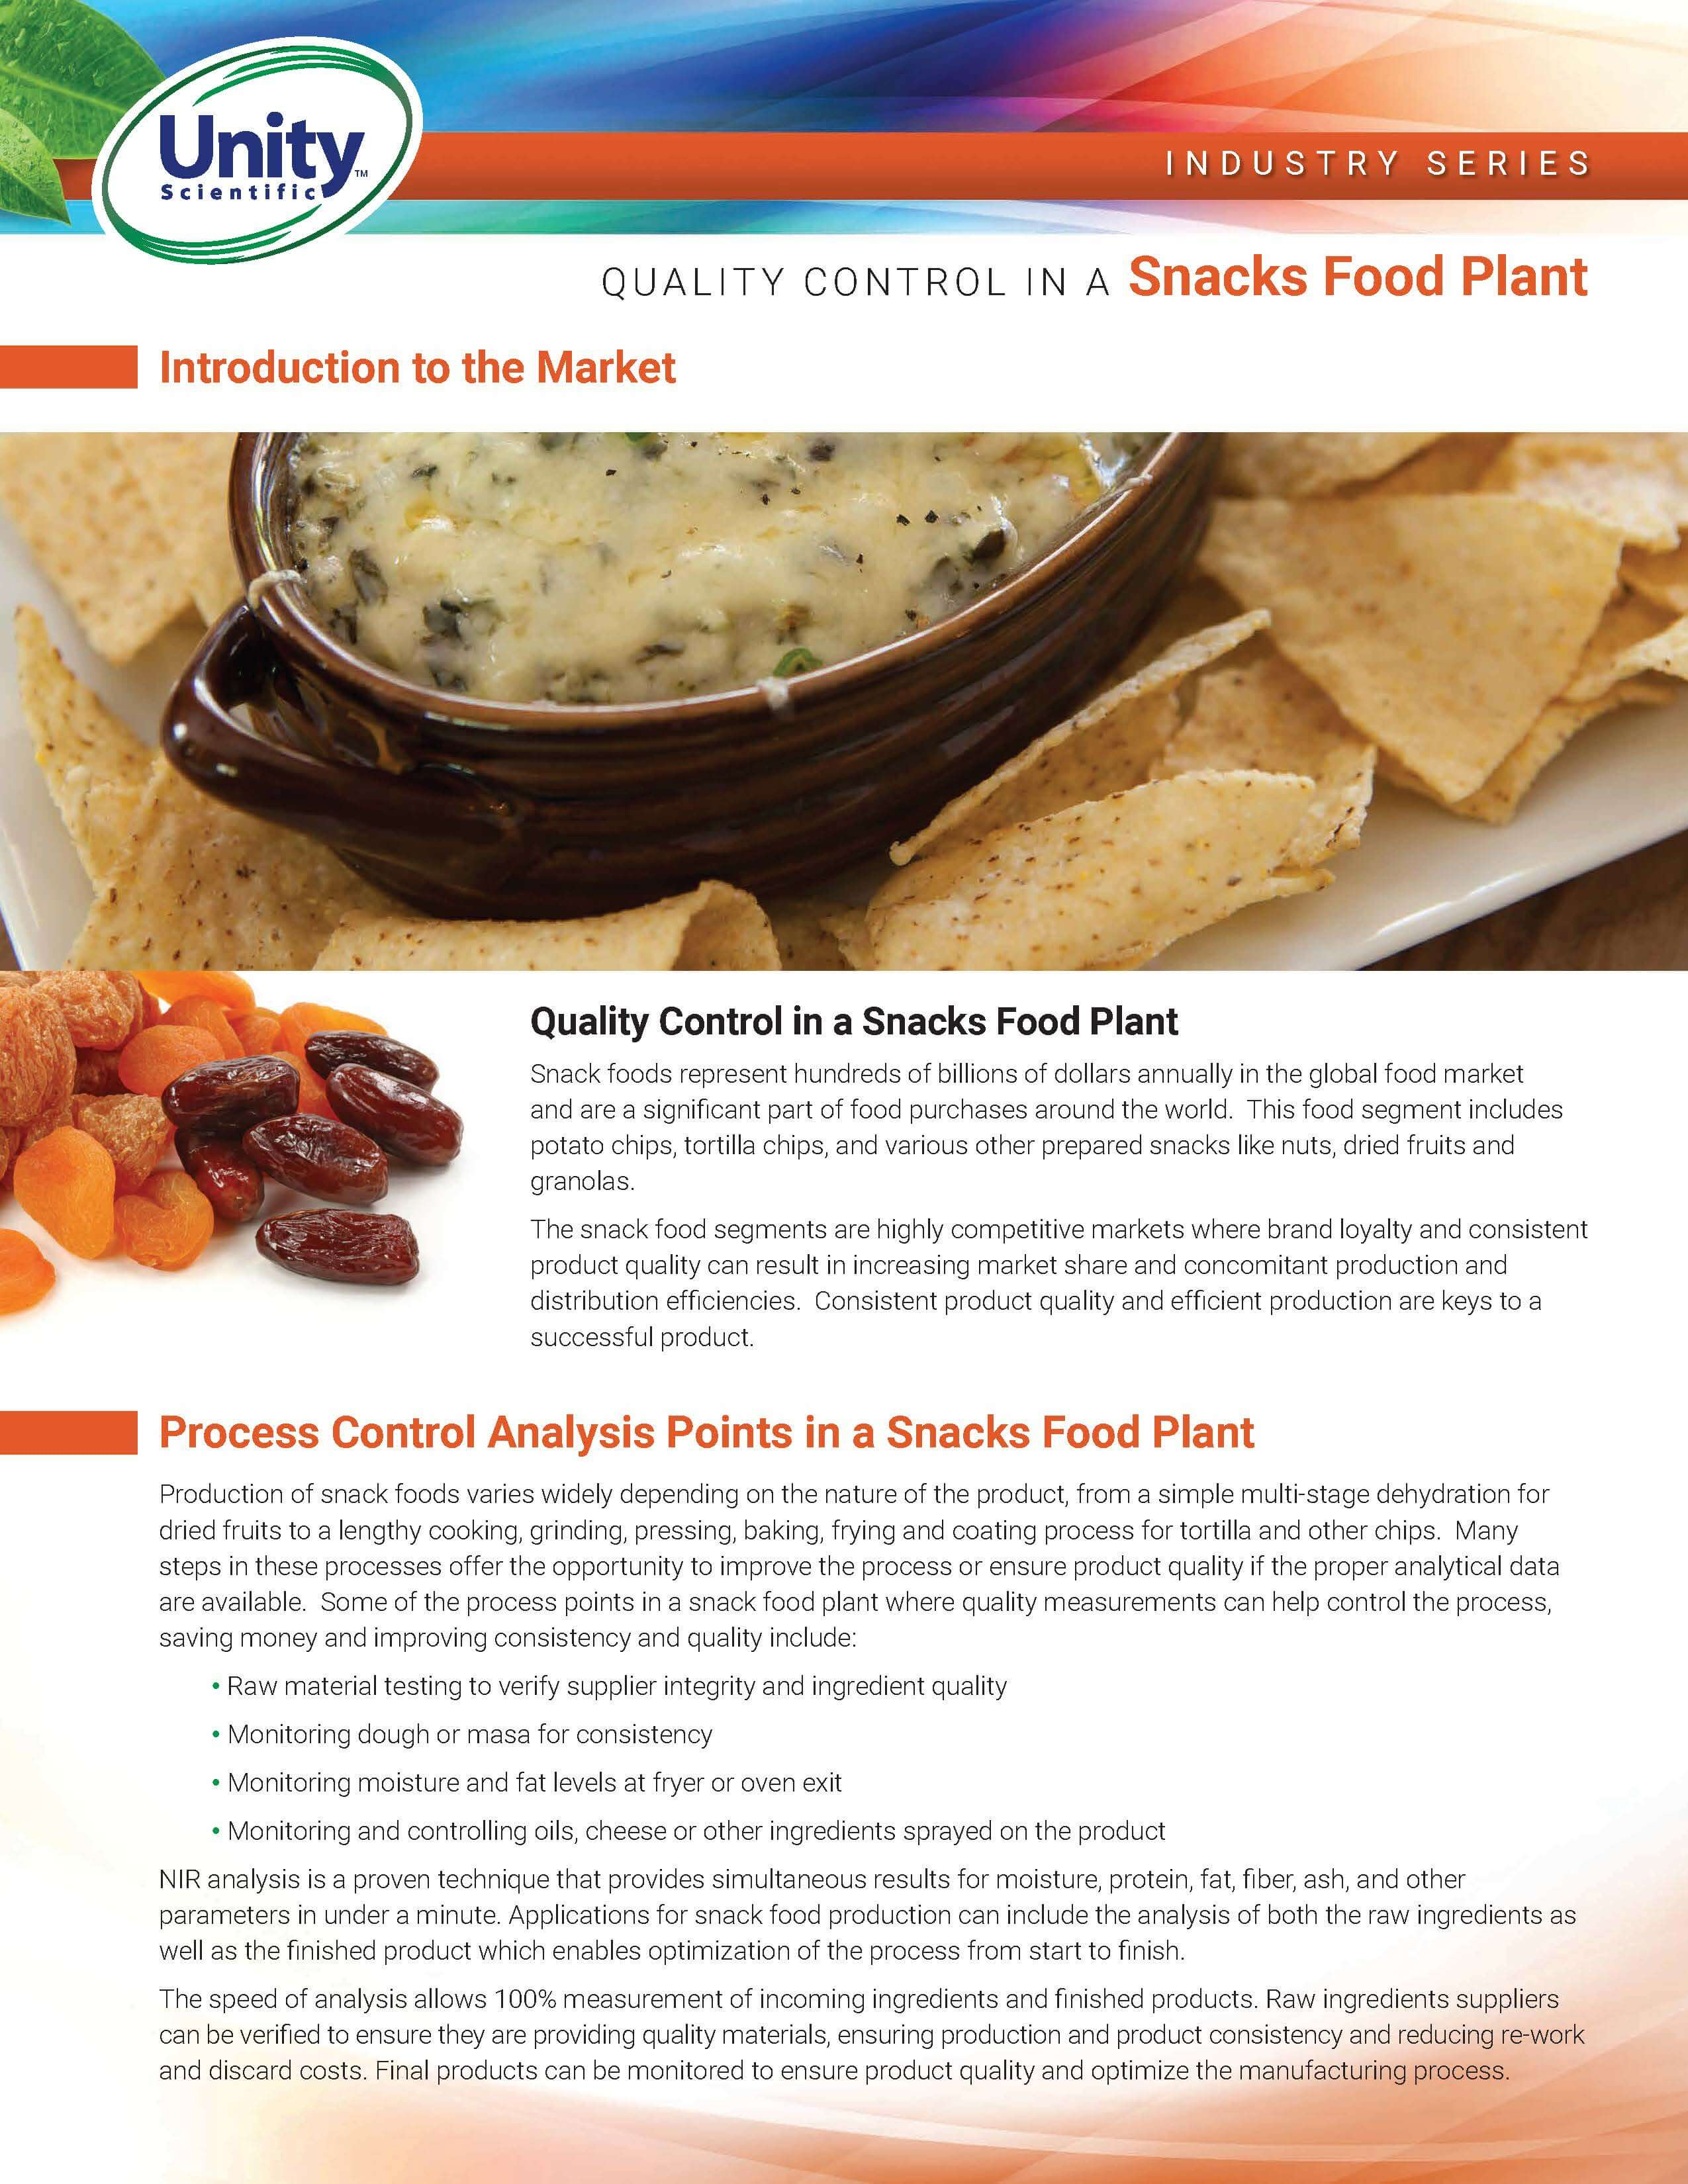 Industry Series - Quality Control In A Snacks Food Plant